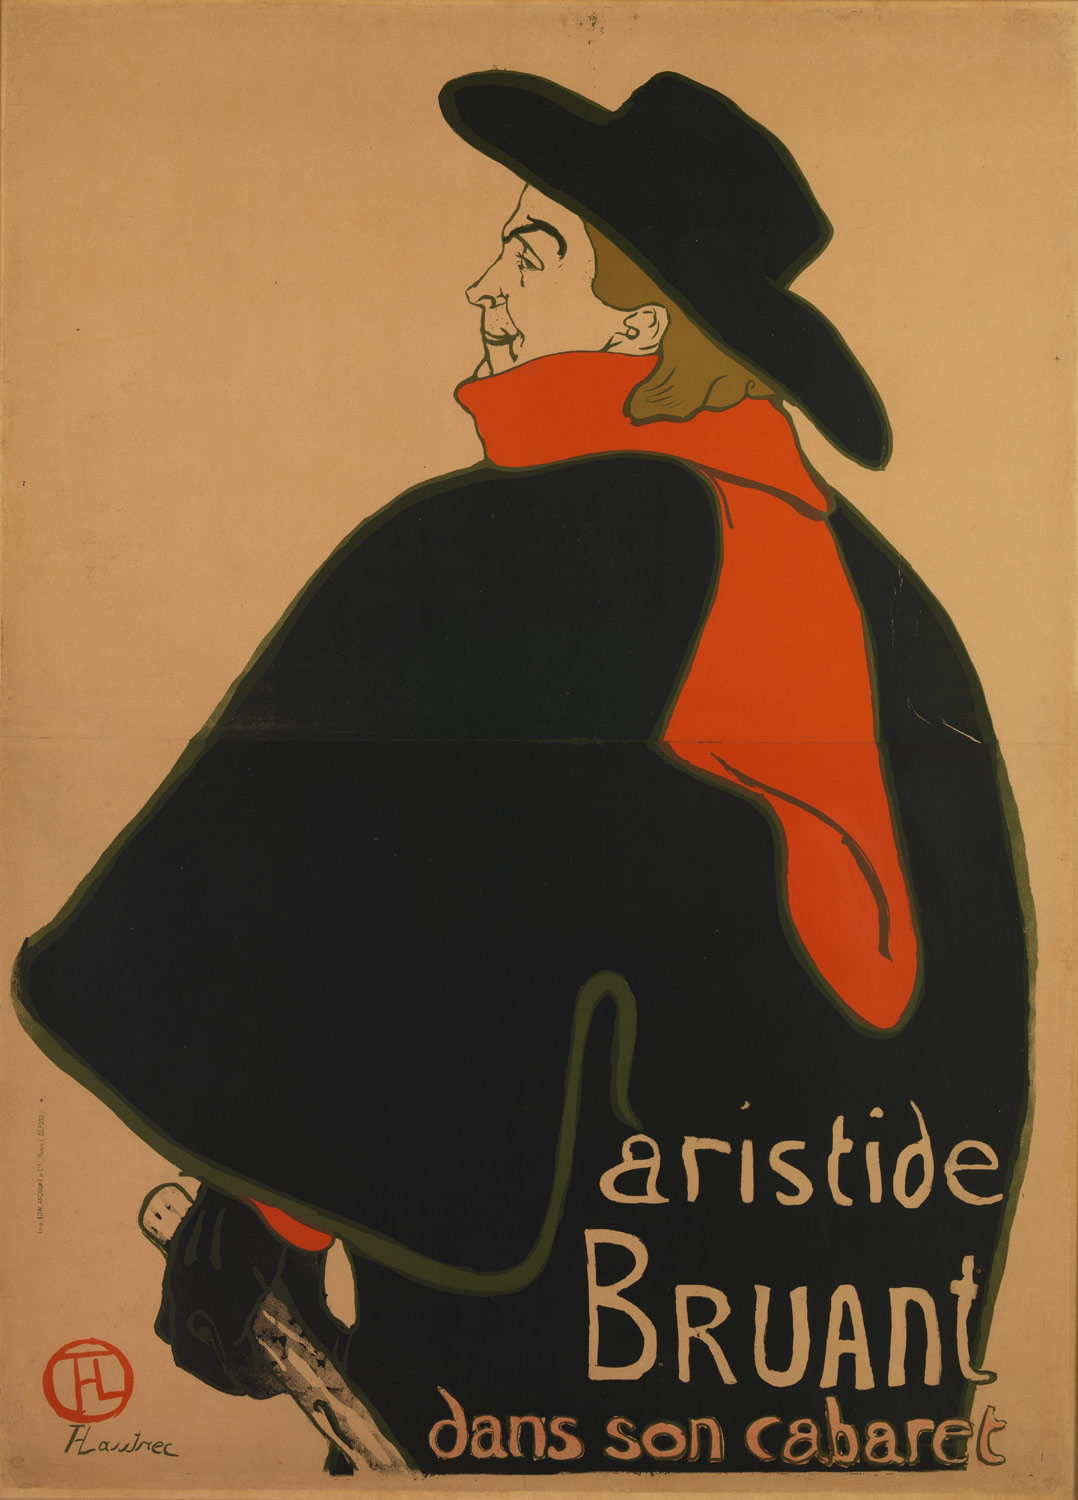 Aristide Bruant in his Cabaret, Toulouse-Lautrec, 1893